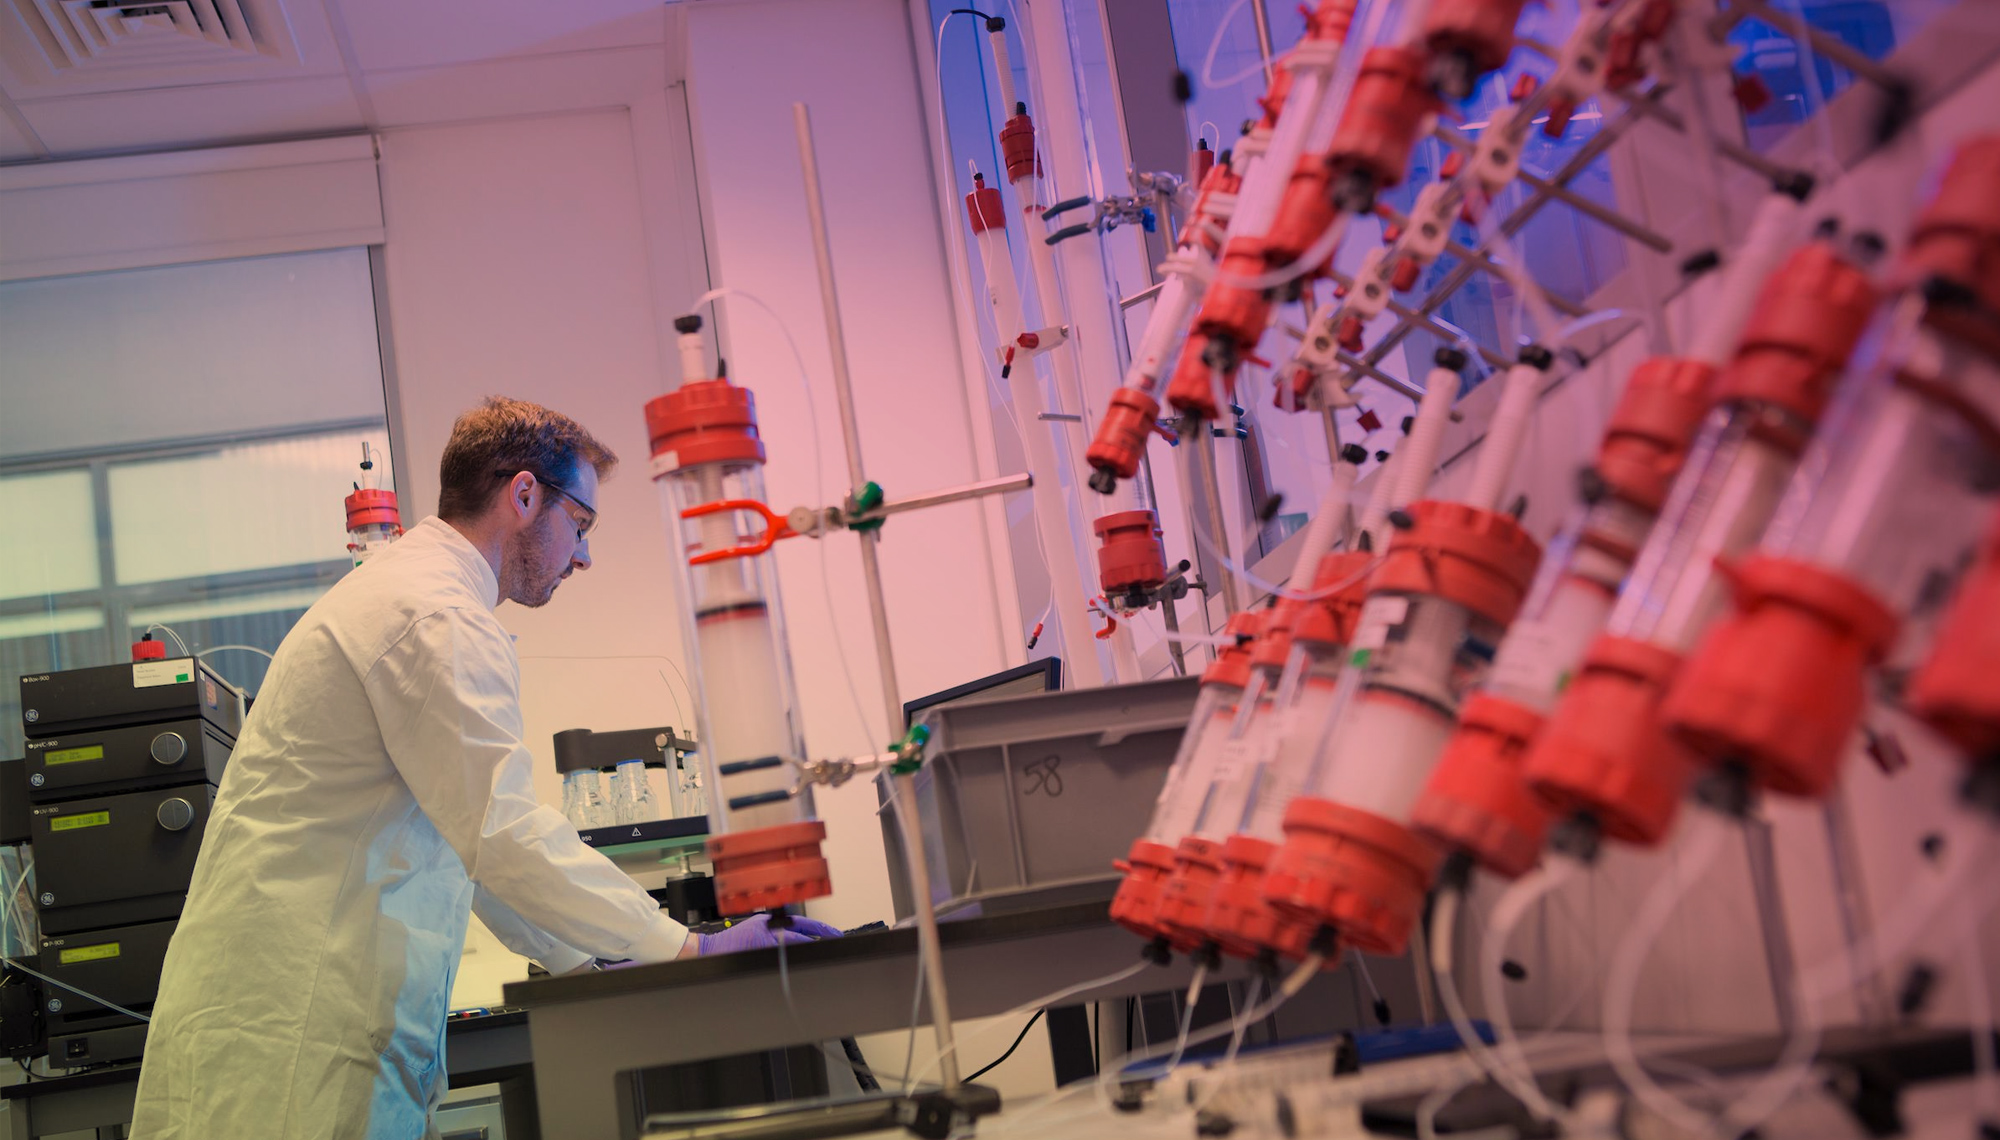 Scotland's chemical sciences and industrial biotech industry